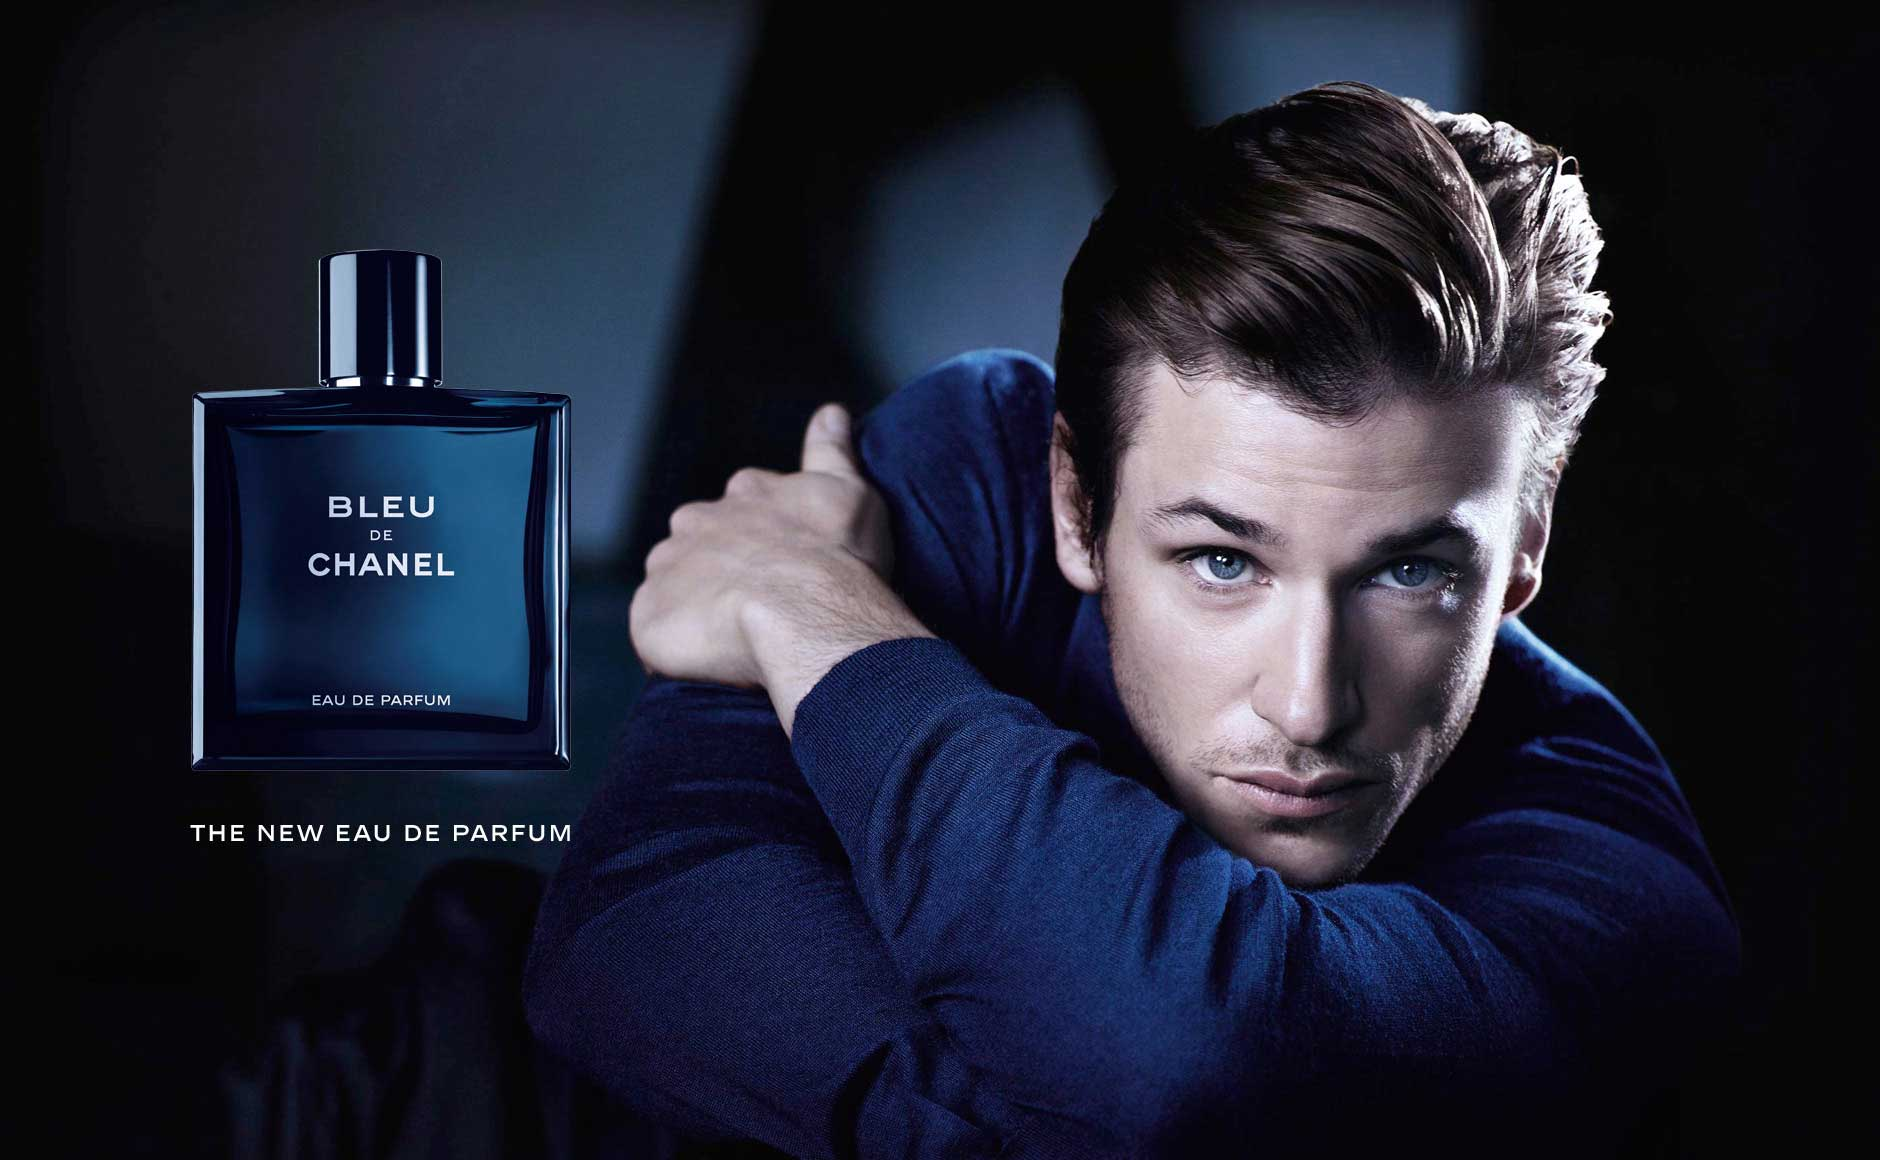 Bleu de Chanel - The New Eau de Parfum